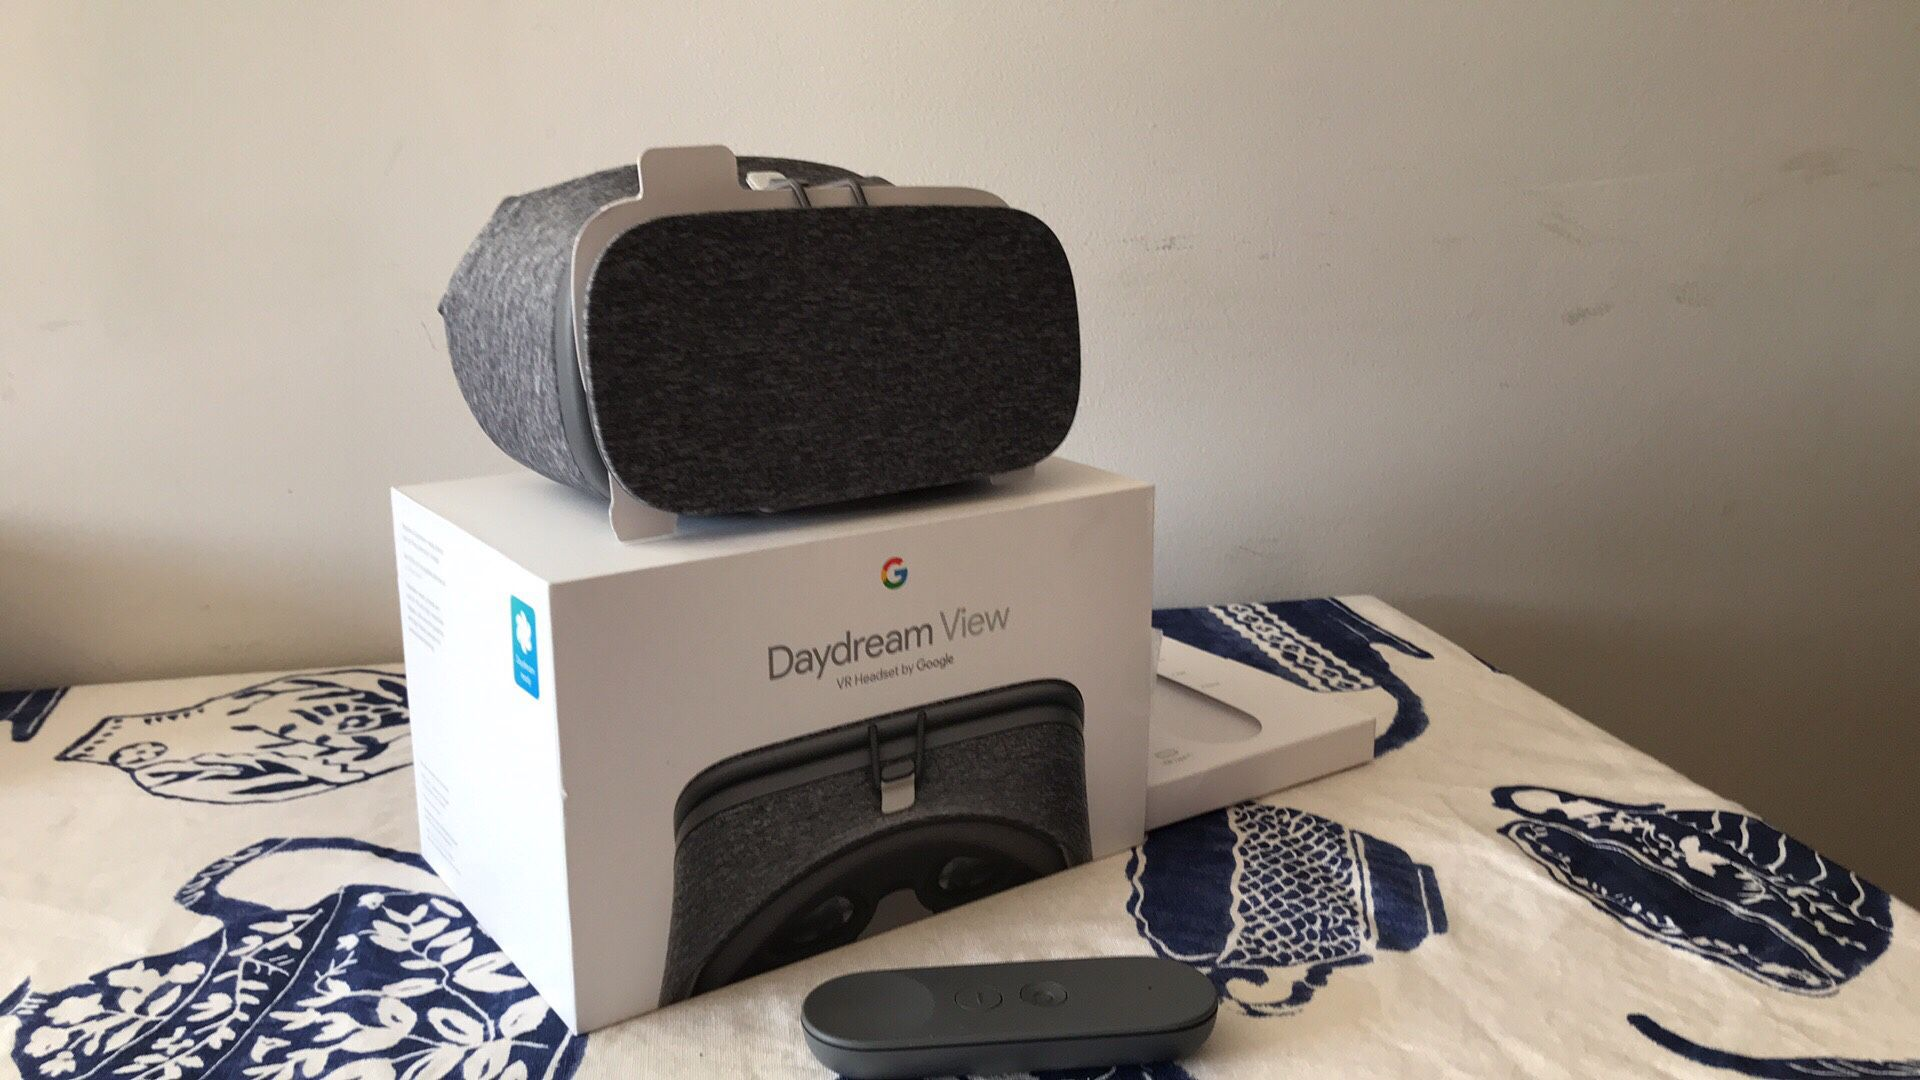 Daydream View by Google